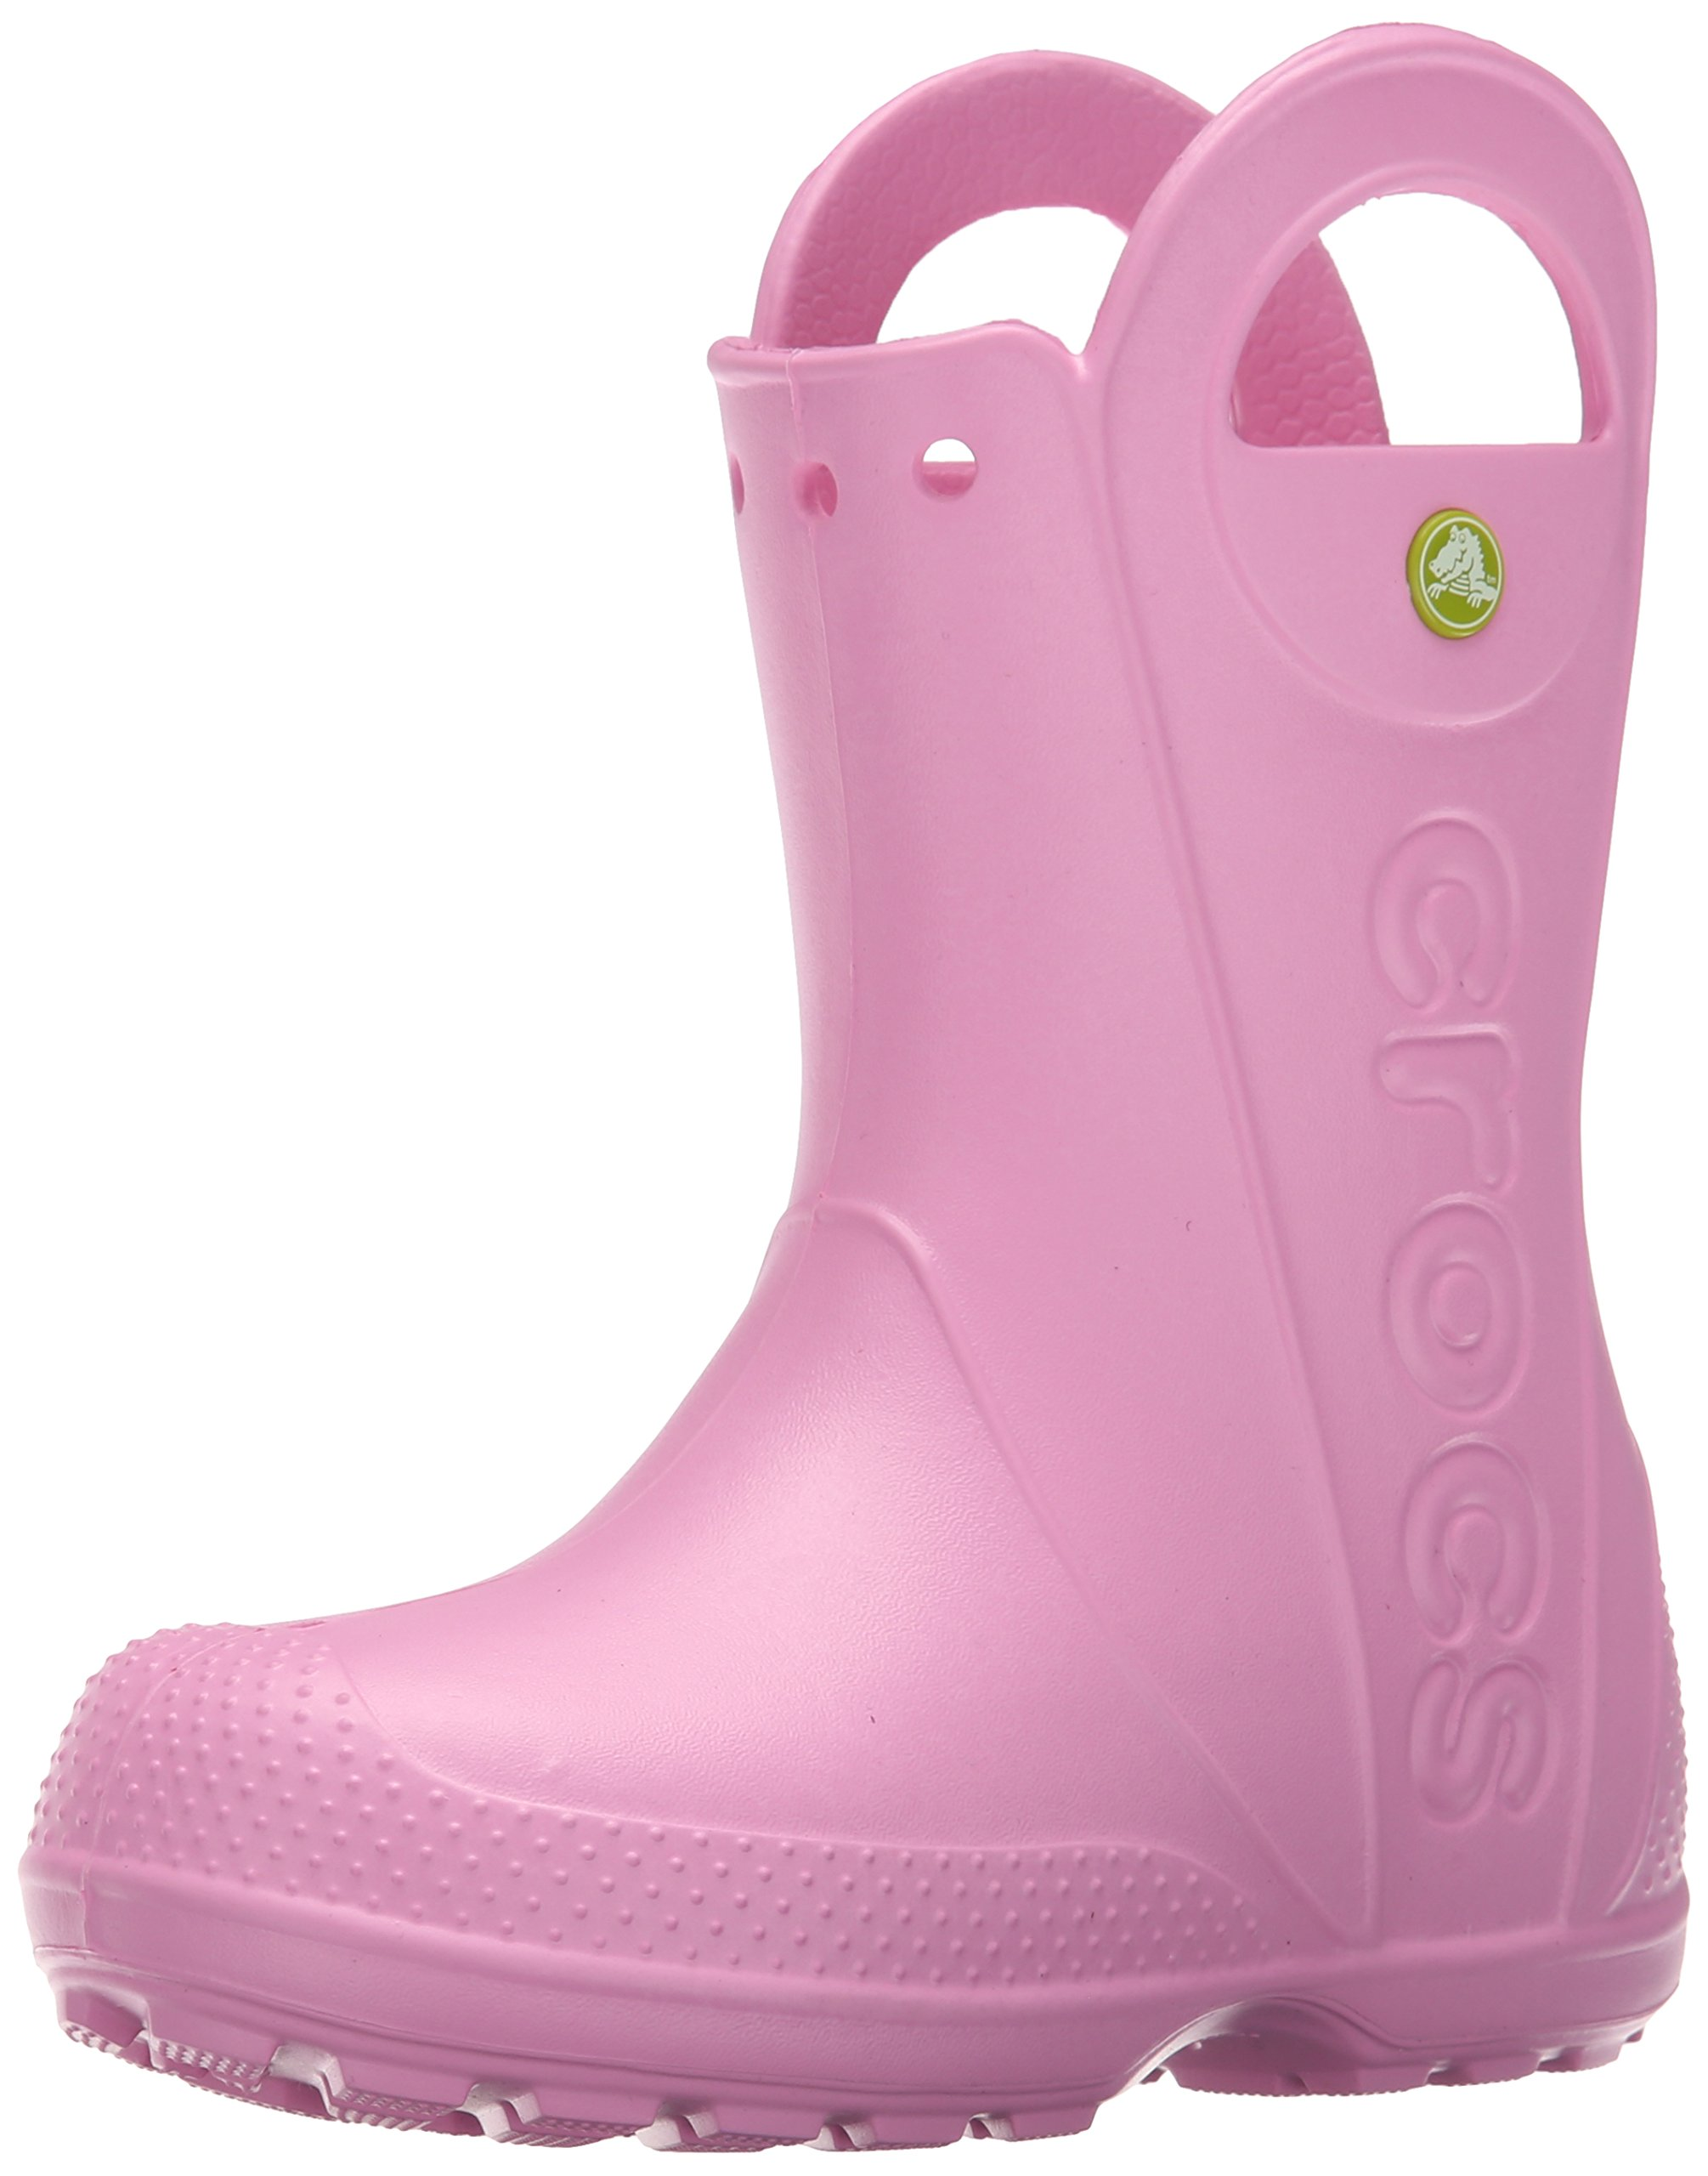 Crocs Kids' Handle It Rain Boots, Easy On for Toddlers, Boys, Girls, Lightweight and Waterproof, Carnation, 1 M US Little Kids